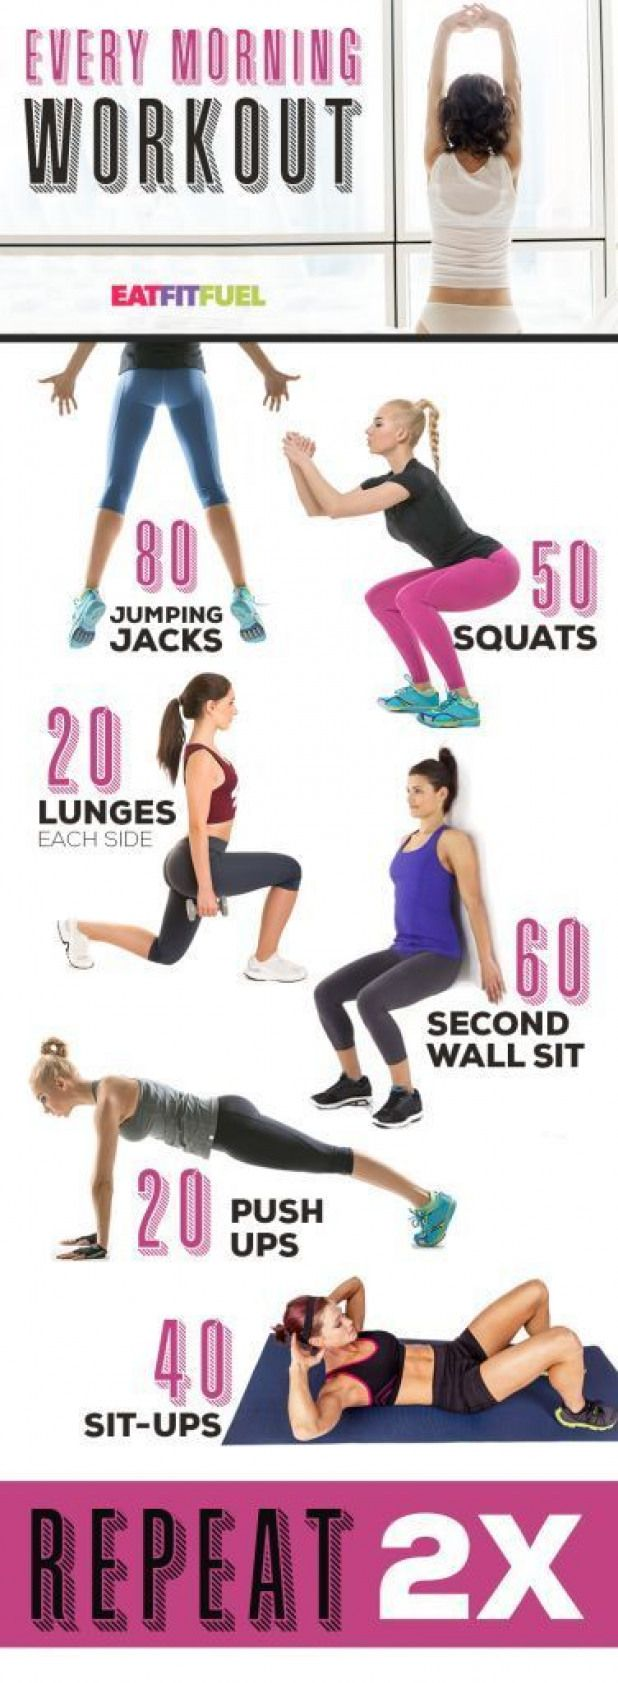 Six-pack abs gain muscle or weight loss these workout plan